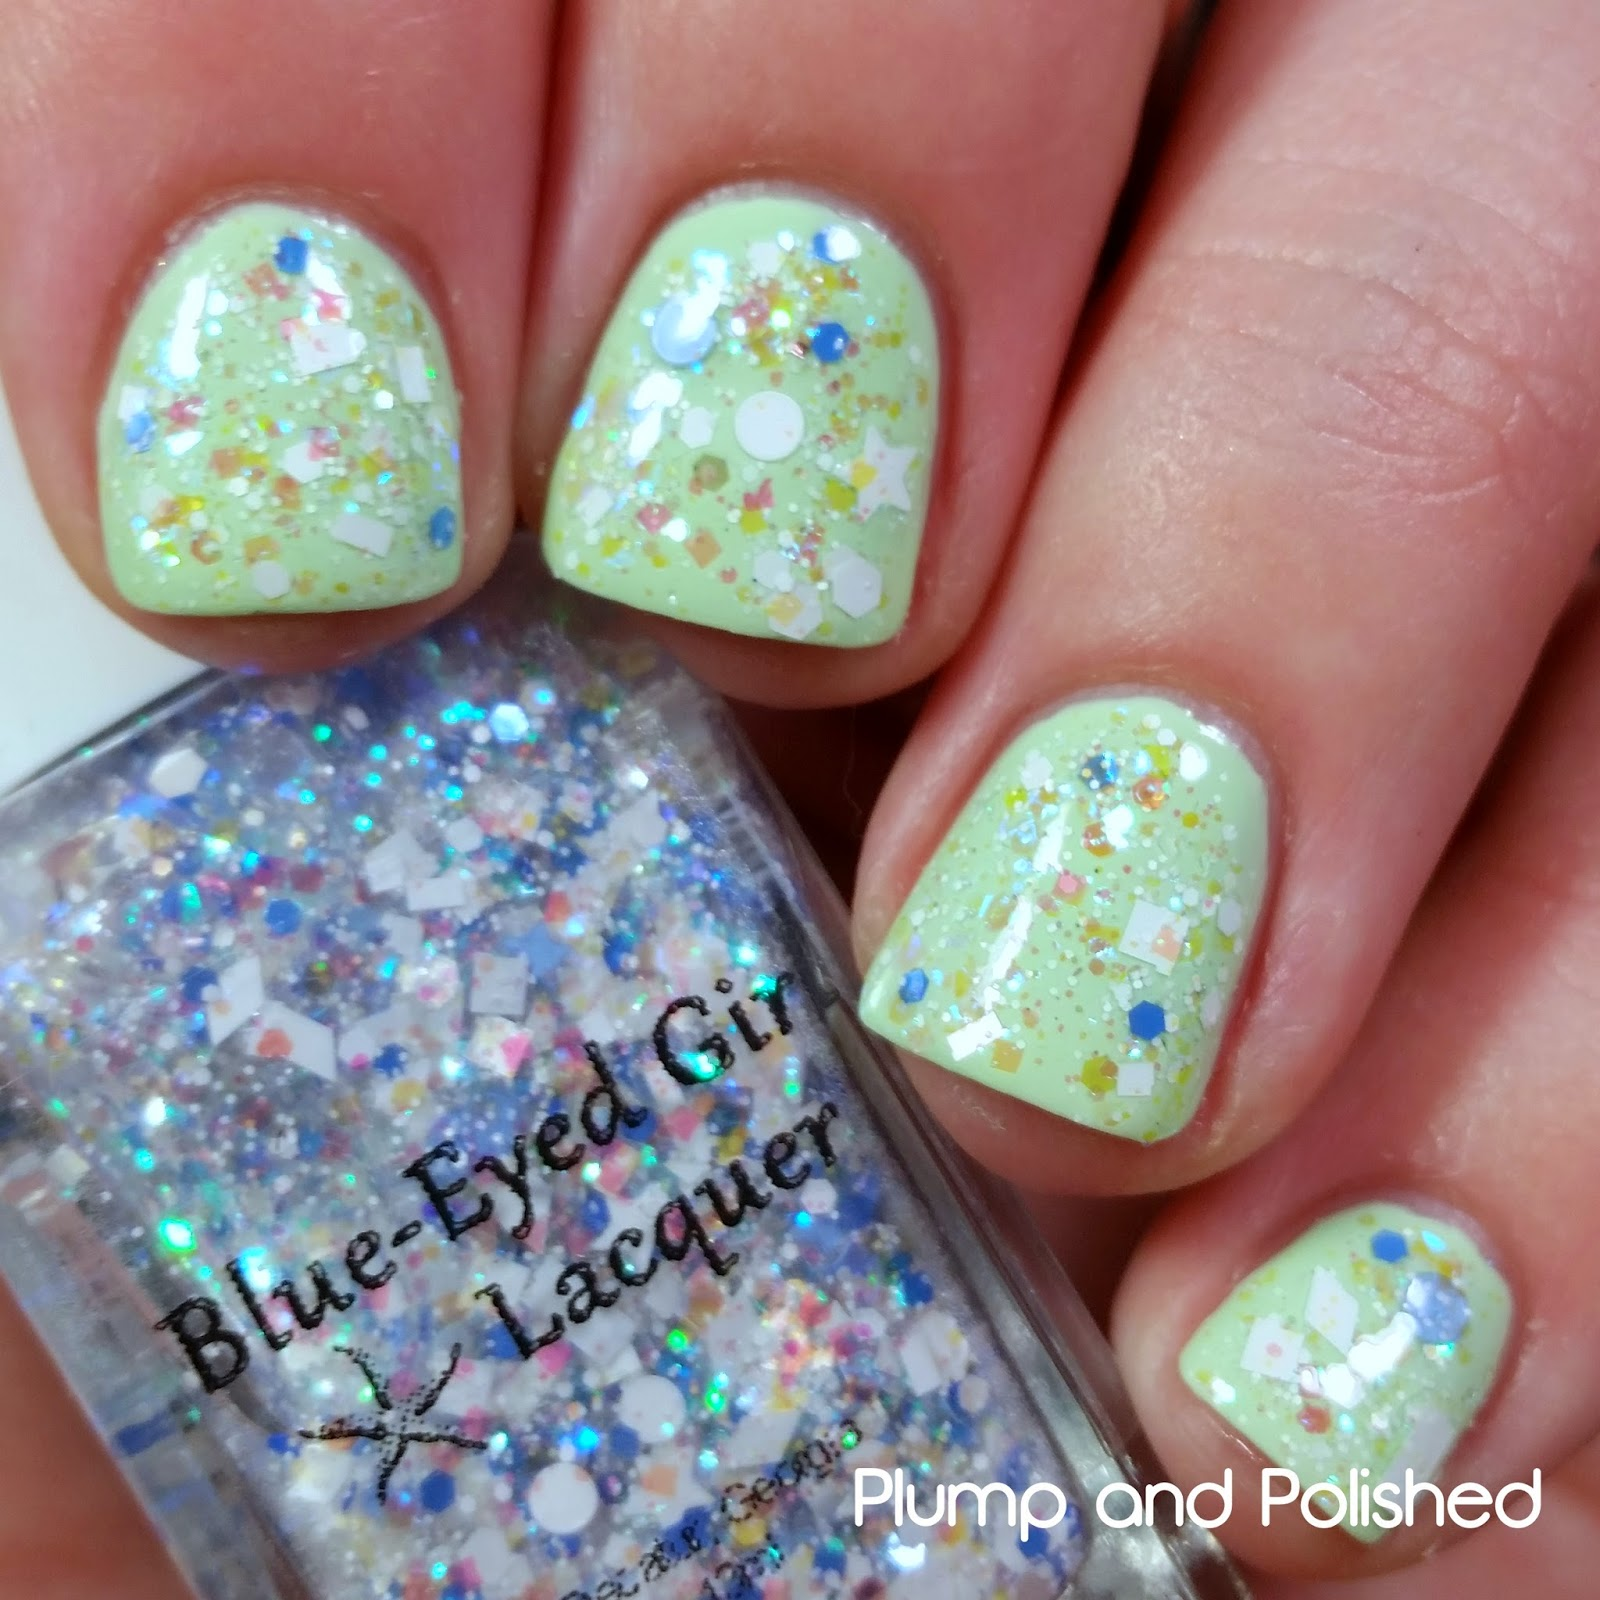 Blue-Eyed Girl Lacquer - Siren Sweetheart